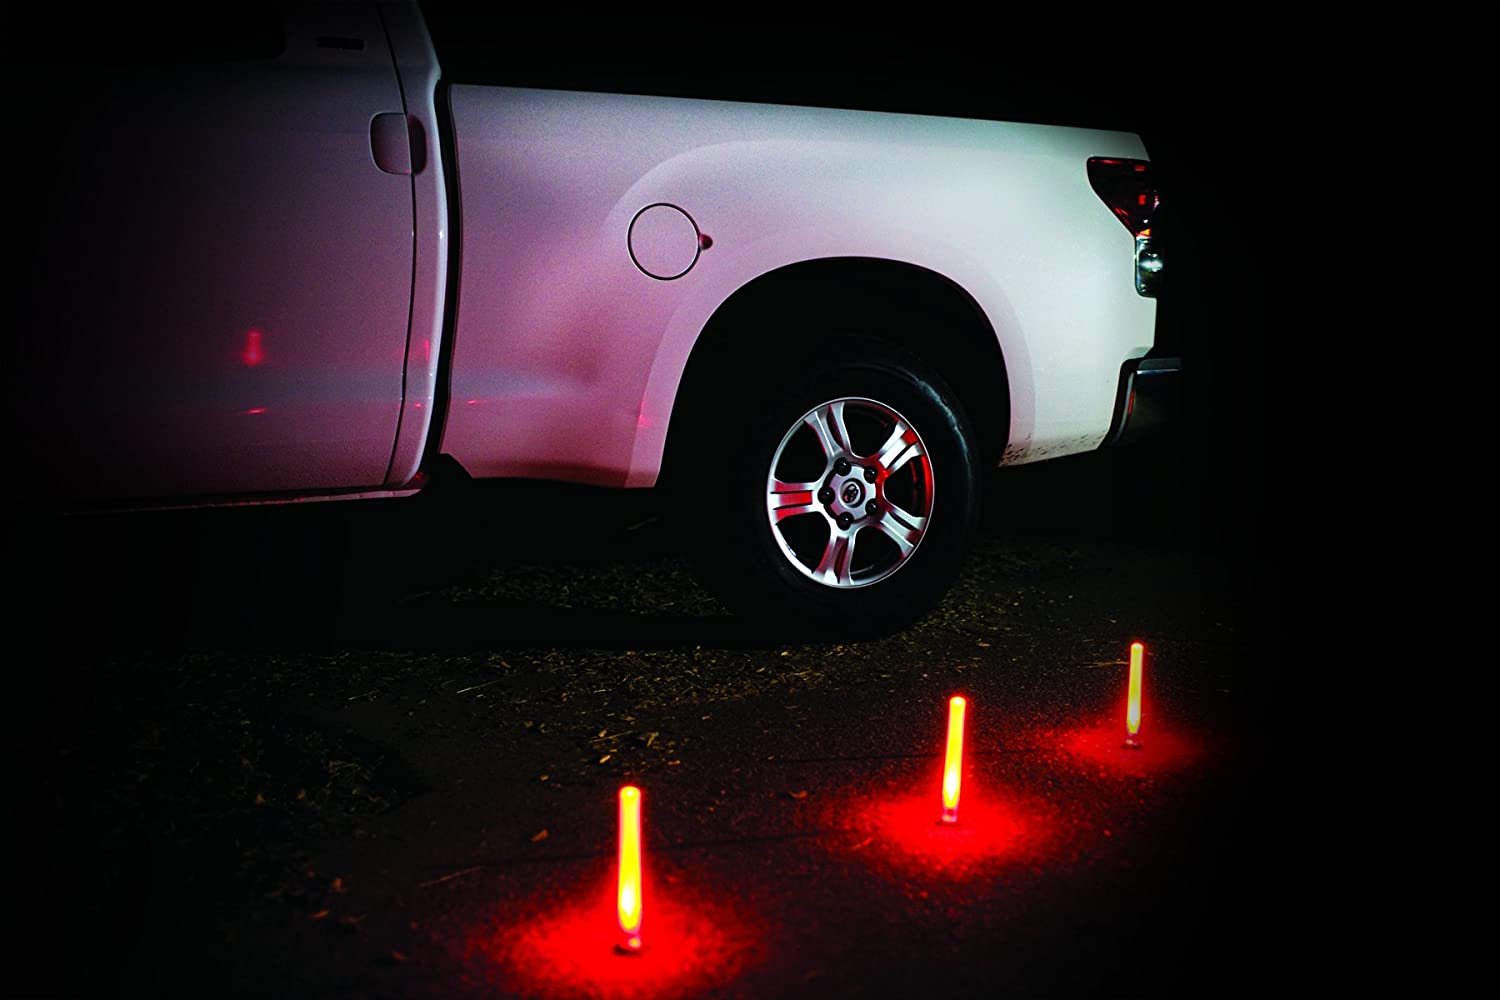 3-Pack Life Gear LG437 Eco-Friendly Glow Emergency Road Flares White//Red